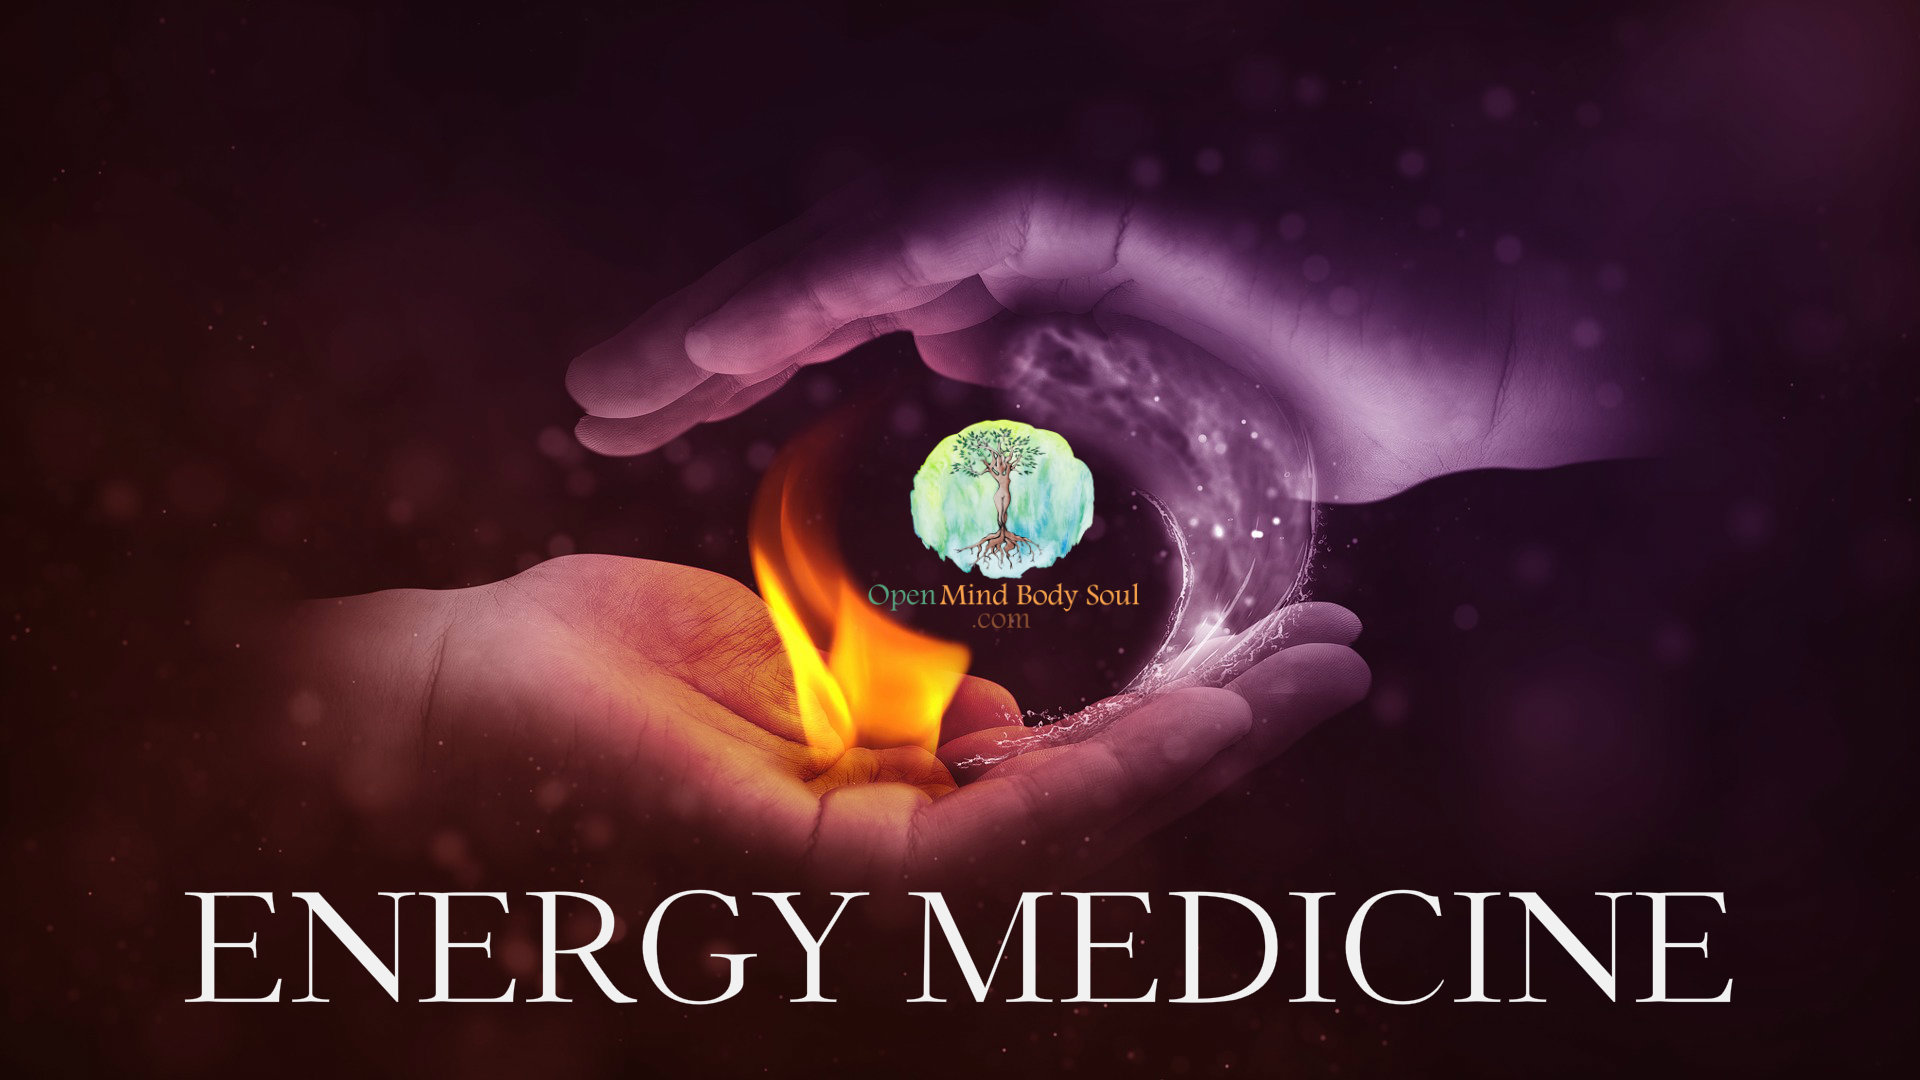 Energy-Healing-Tools-Exercises-OpenMindBodySoul.jpg